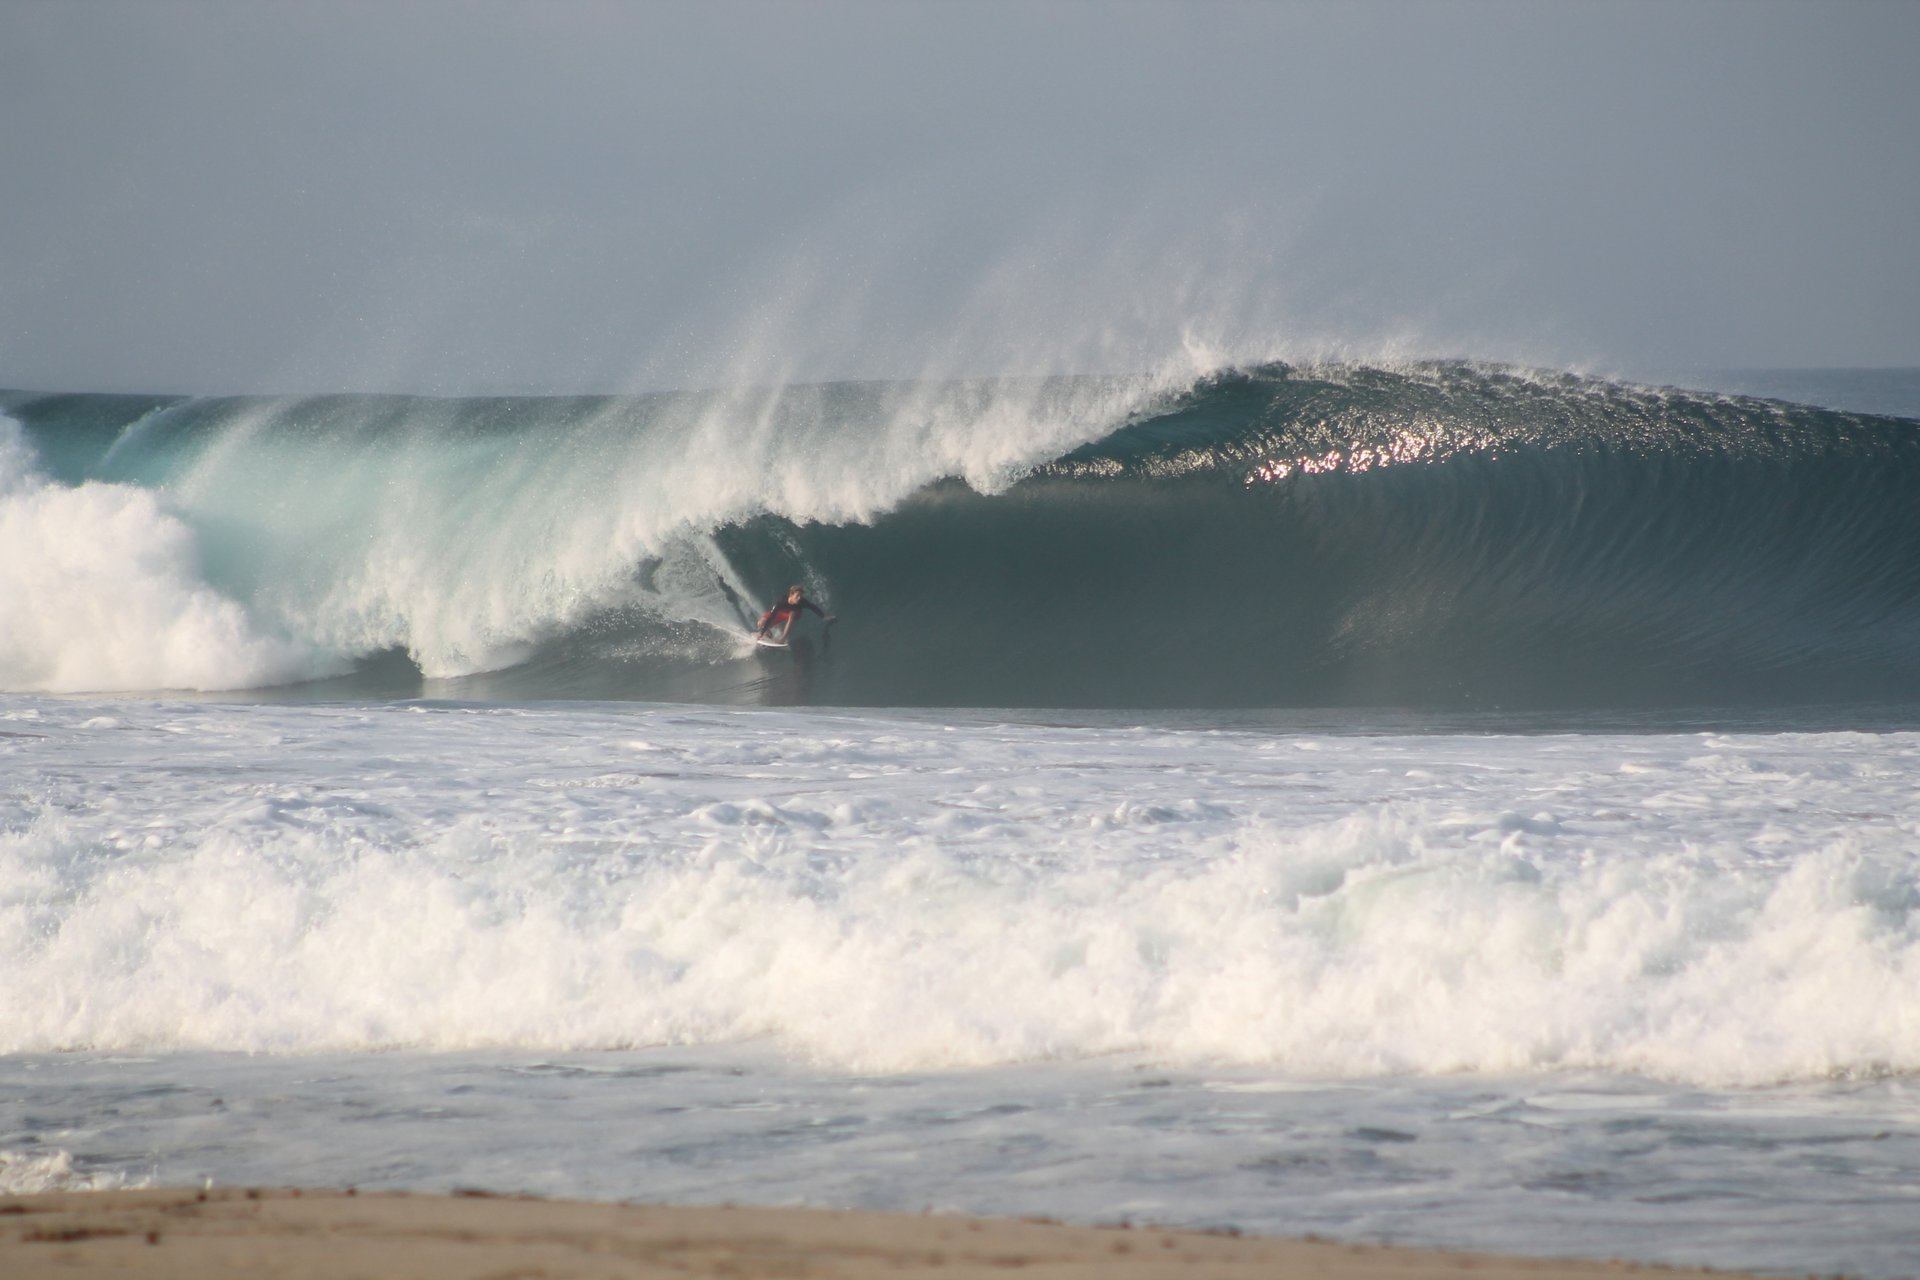 Hoch's photo of Puerto Escondido